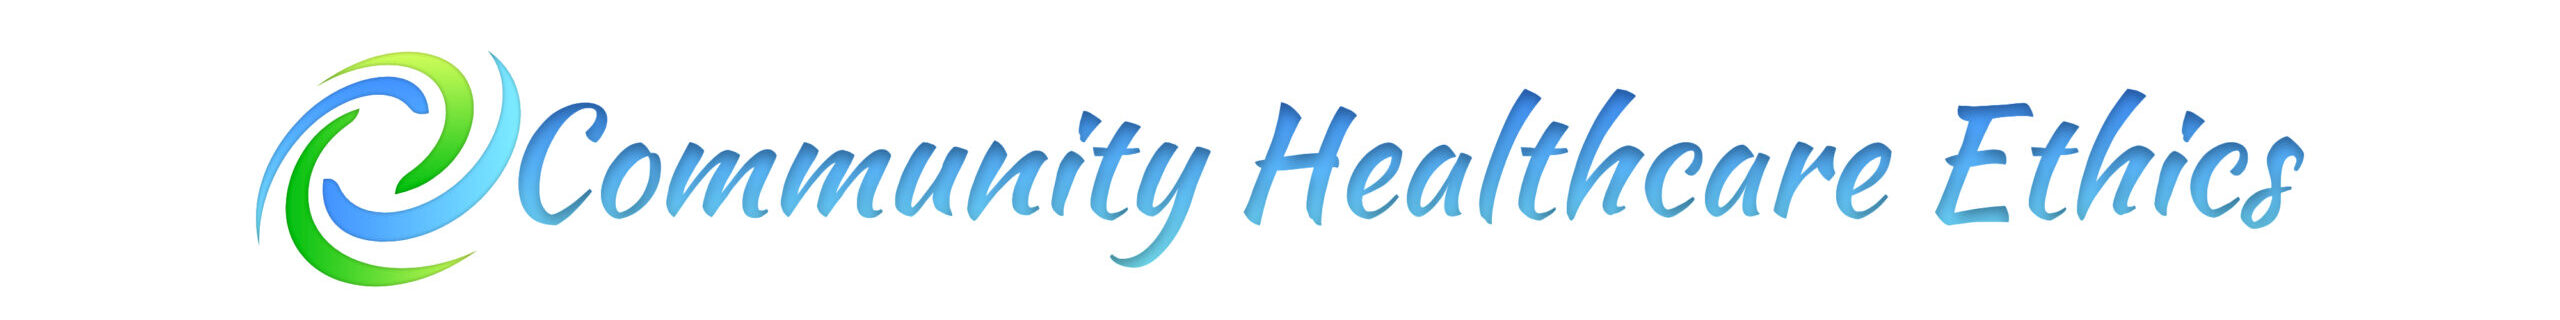 Community Healthcare Ethics